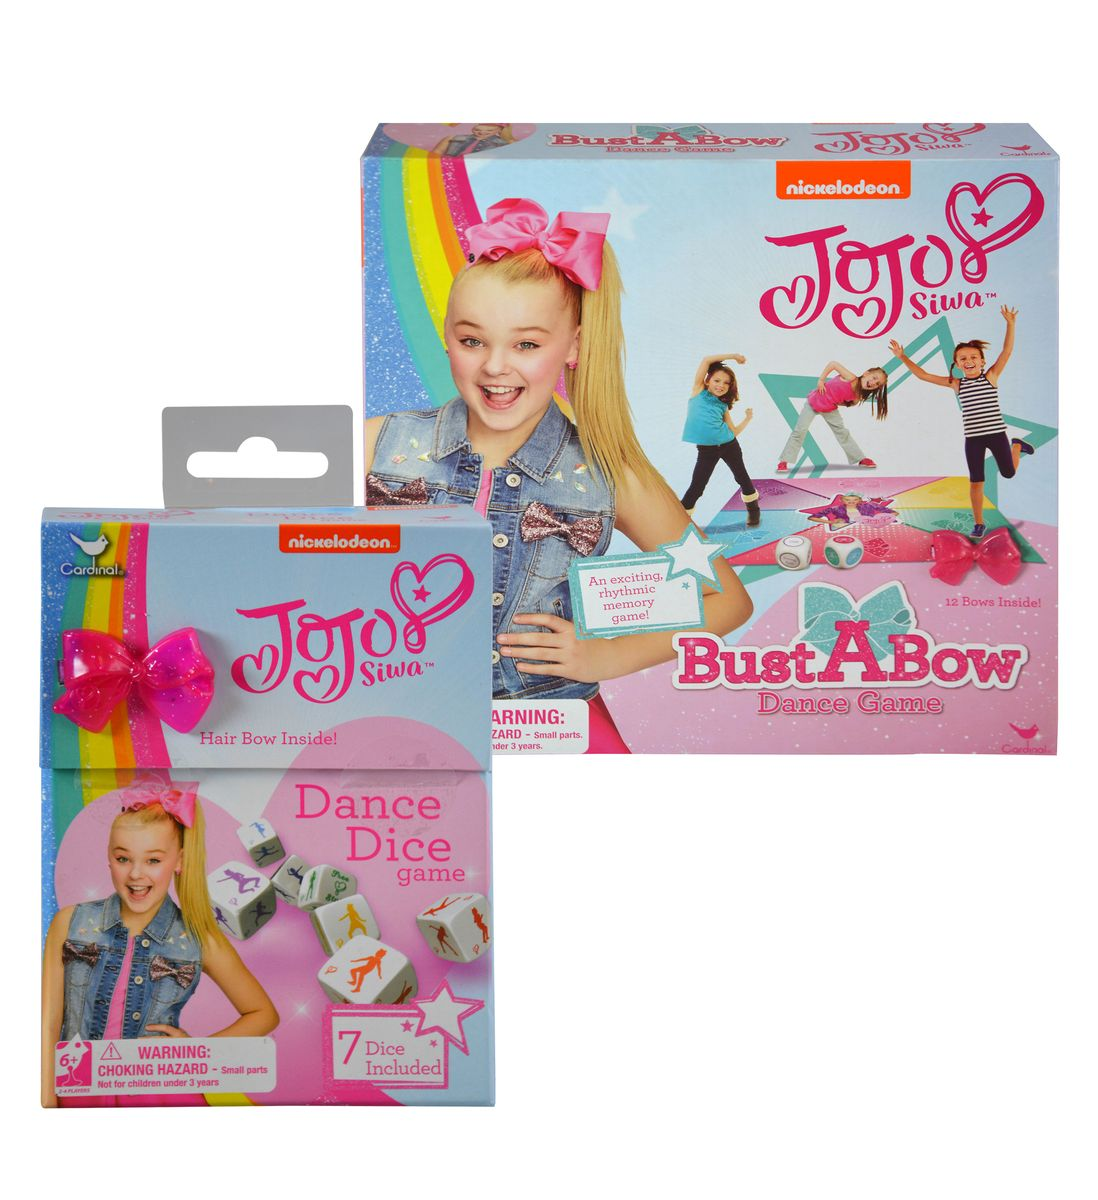 JoJo Siwa Dance Dice Board Game (7pc Set) and Bust A Bow Dance Game (2 Items)